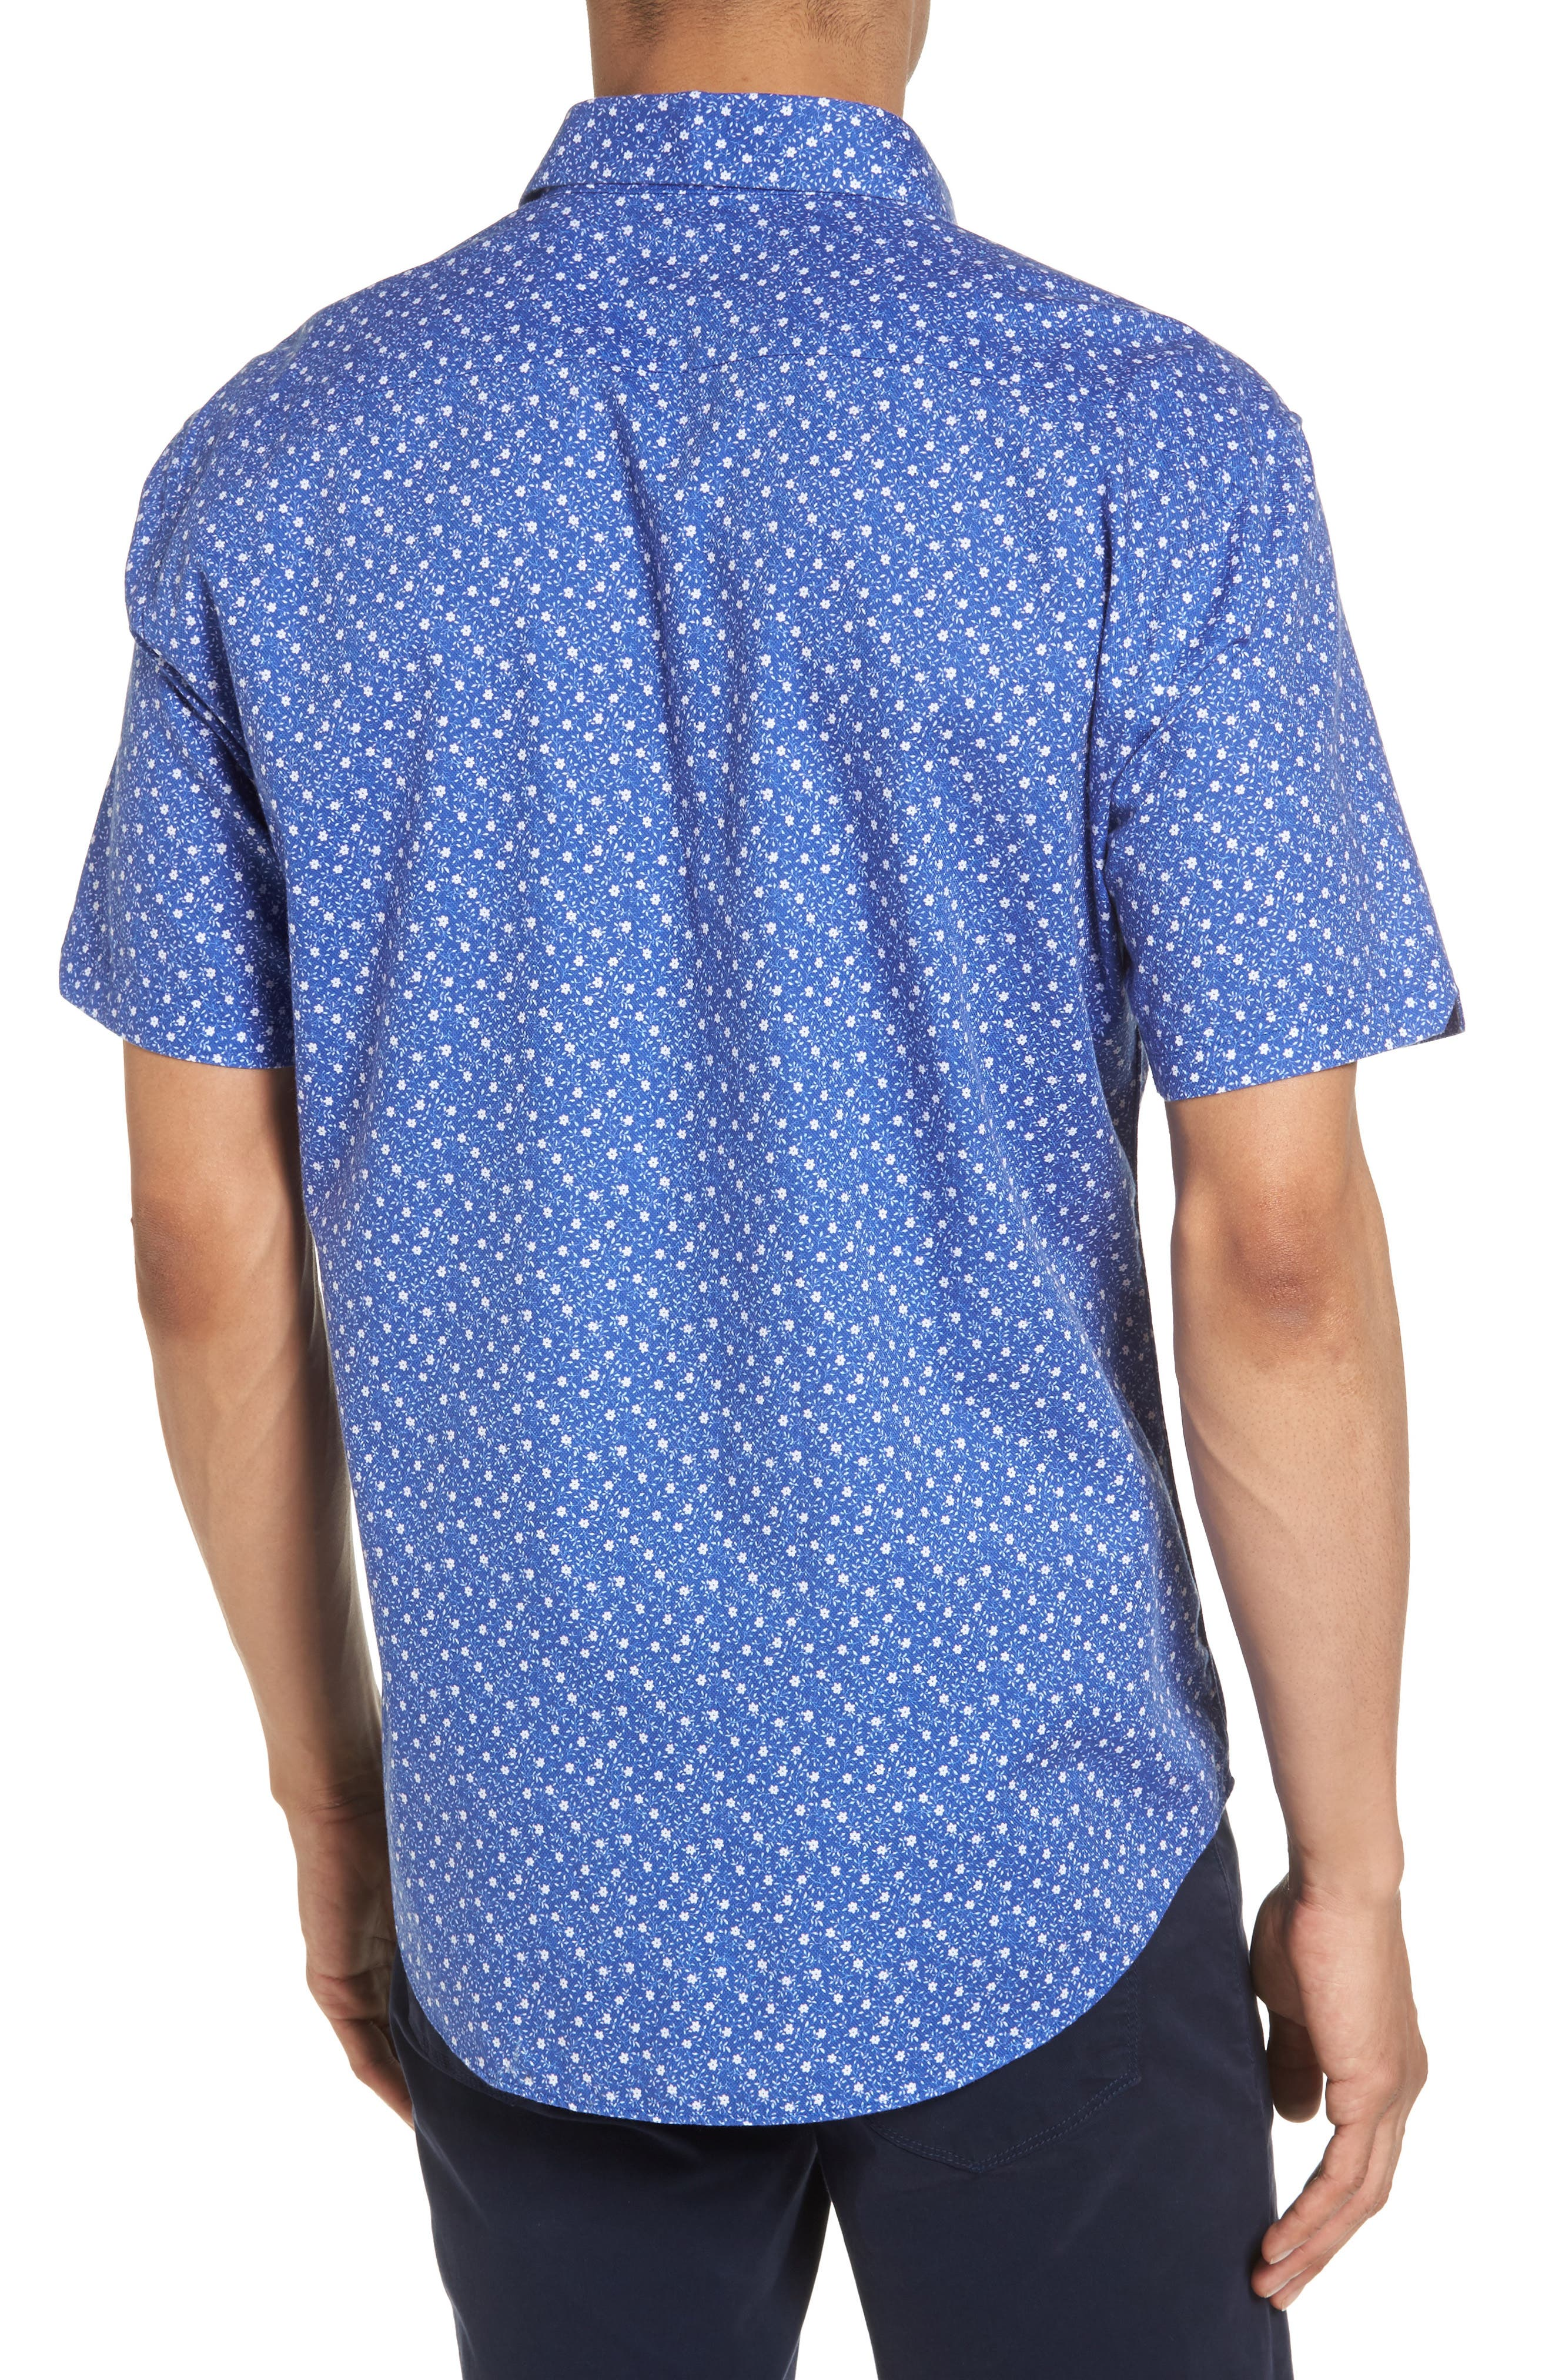 Alternate Image 3  - Zachary Prell Floral Print Short Sleeve Sport Shirt